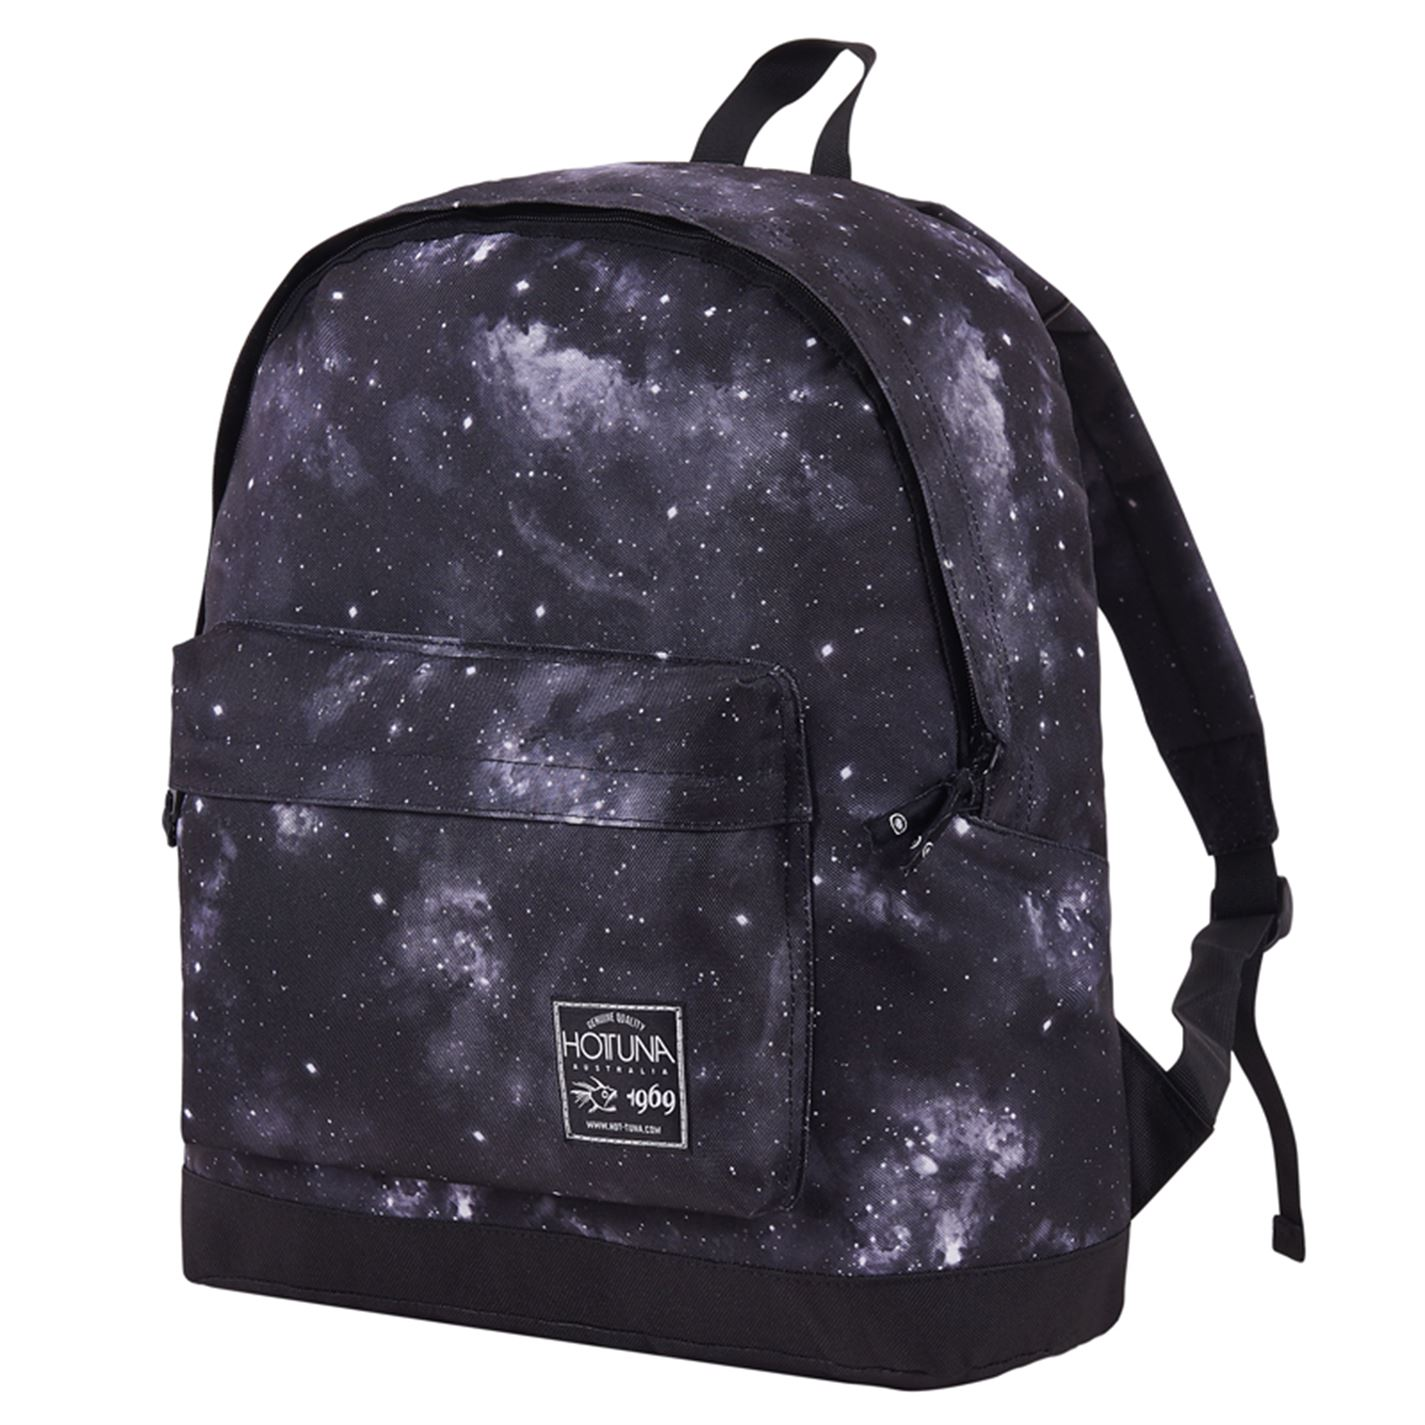 Hot Tuna Galaxy Back Pack Voyage Bagages Sac à Dos Décontracté Sac